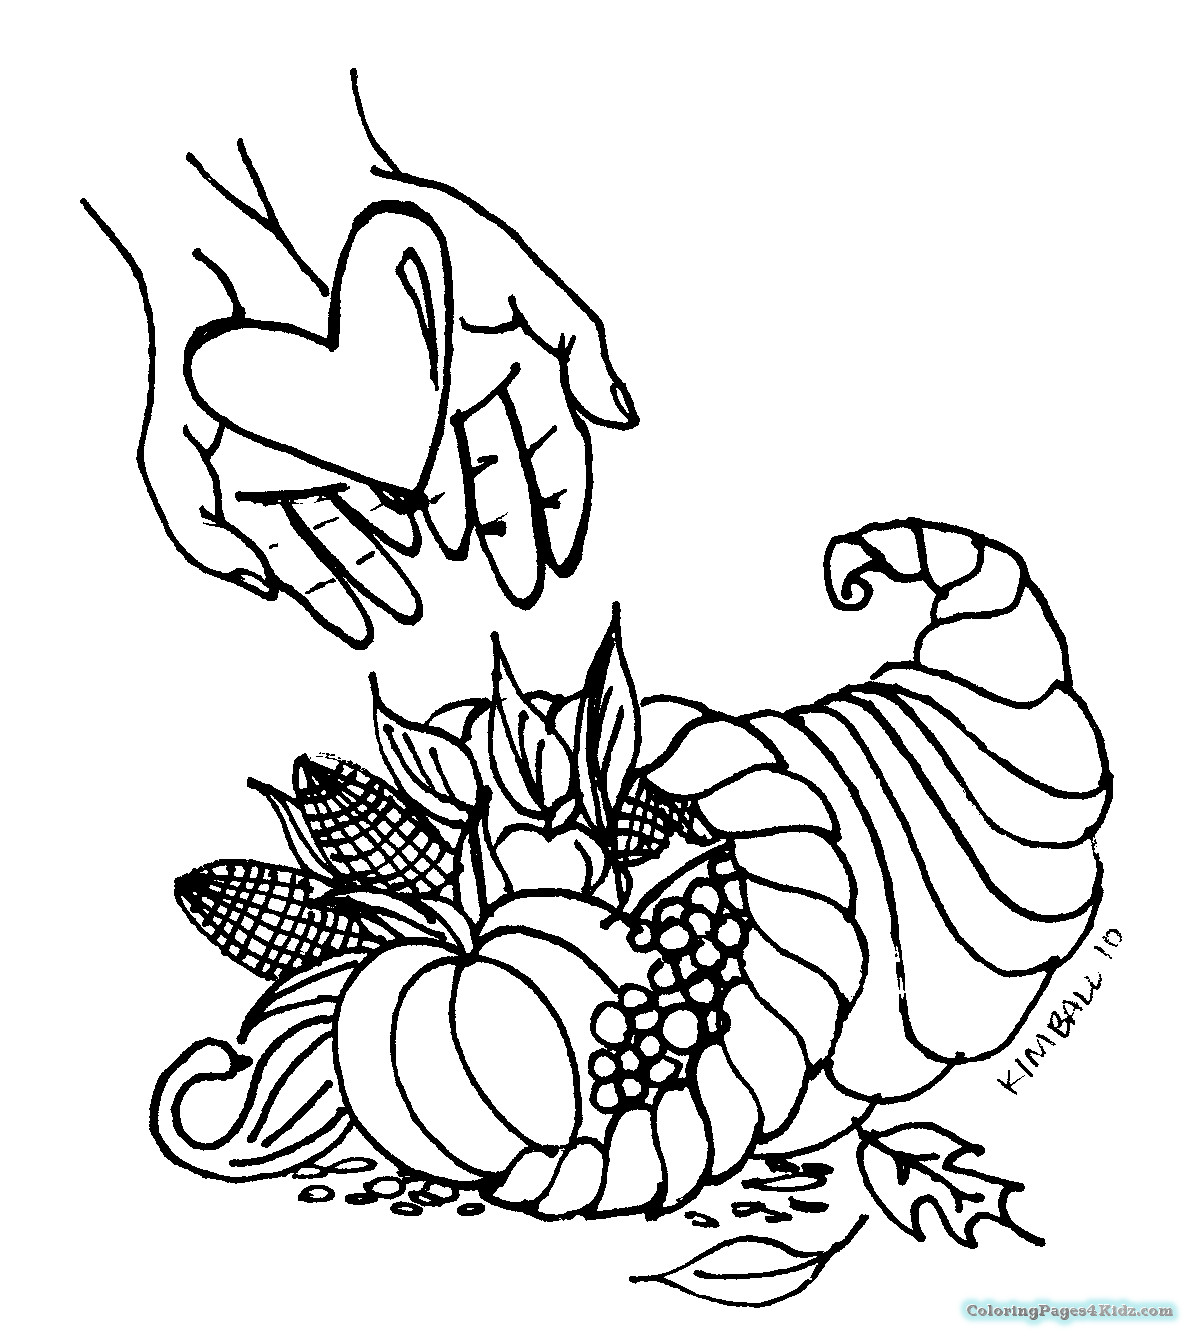 Religious Thanksgiving Coloring Pages For Kids  Christian Thanksgiving Coloring Pages